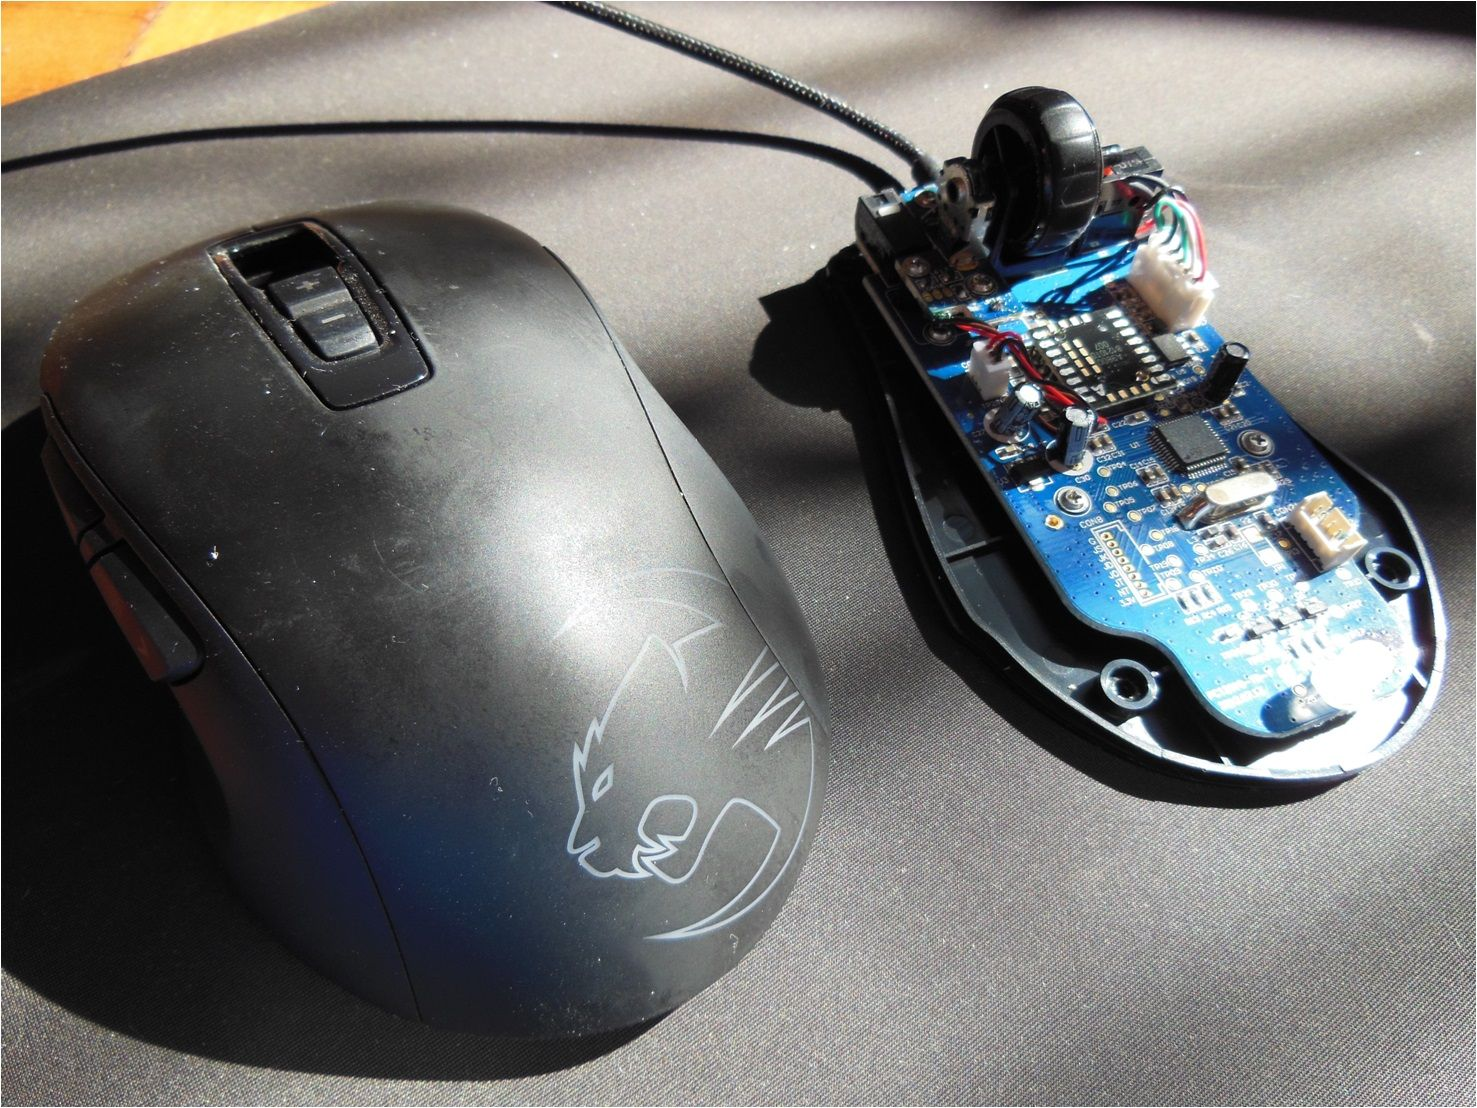 Roccat And Cyborg Product Reliability Optical Mouse Circuit Board Picture Its Some Pretty Nice Internals But There Are Mice Out That Cost Less Have Just About The Same Savu Cm Storm Spawn